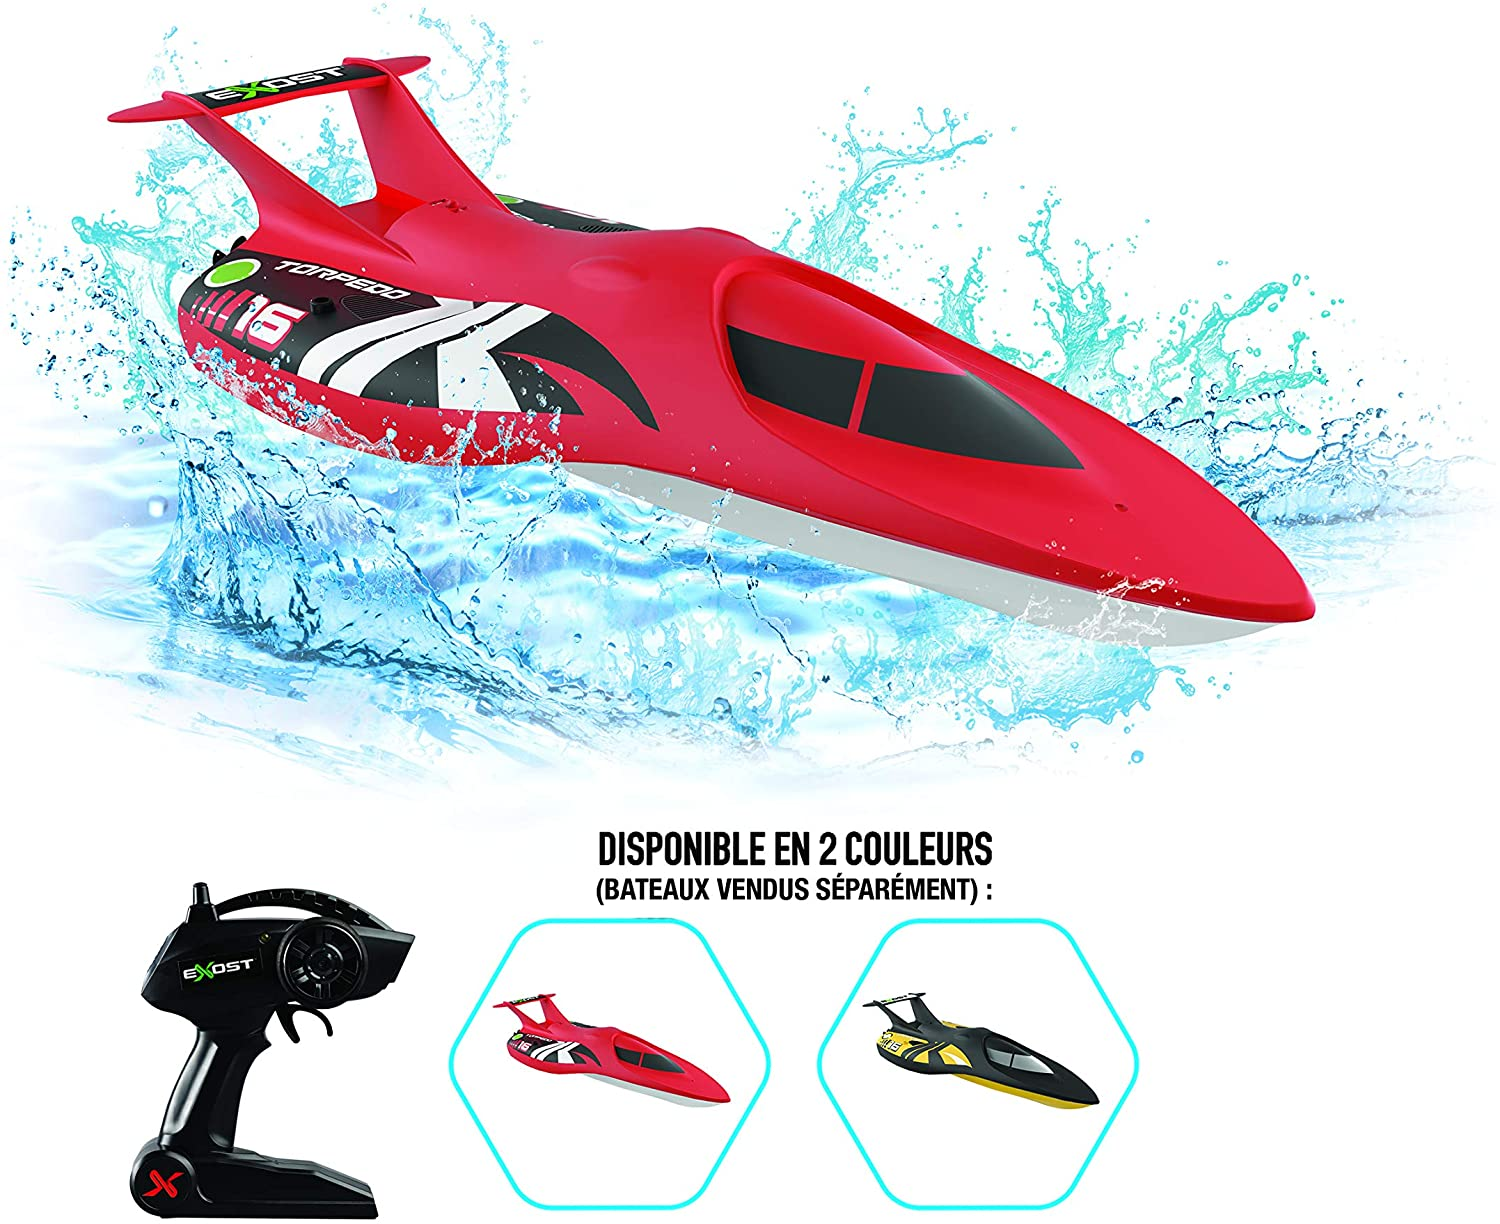 Exost Torpedo remote controlled boat